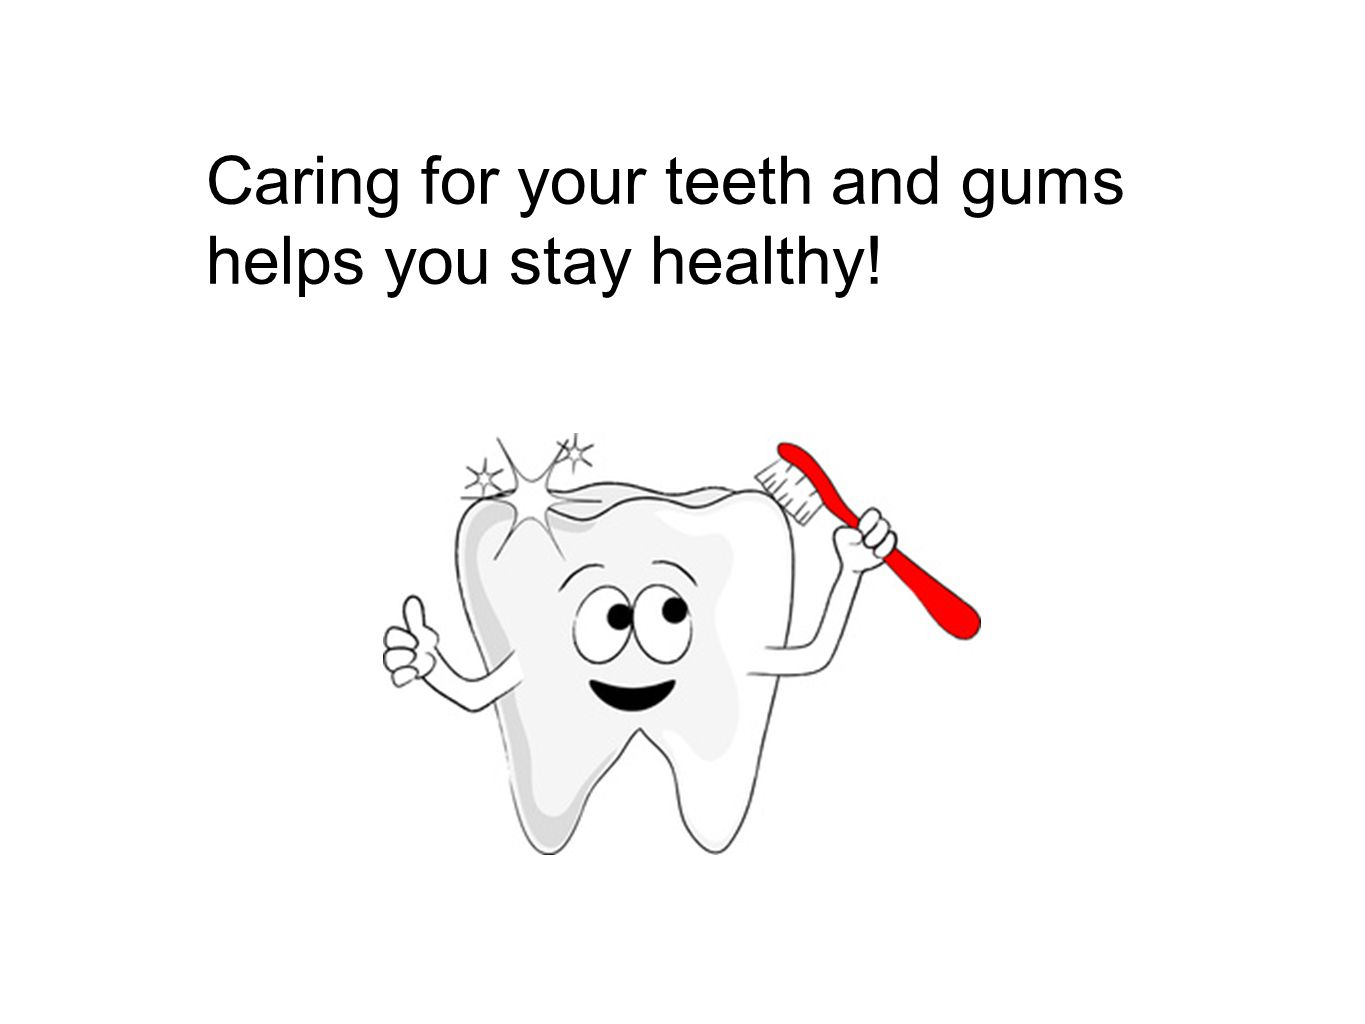 Caring for your teeth and gums helps you stay healthy!